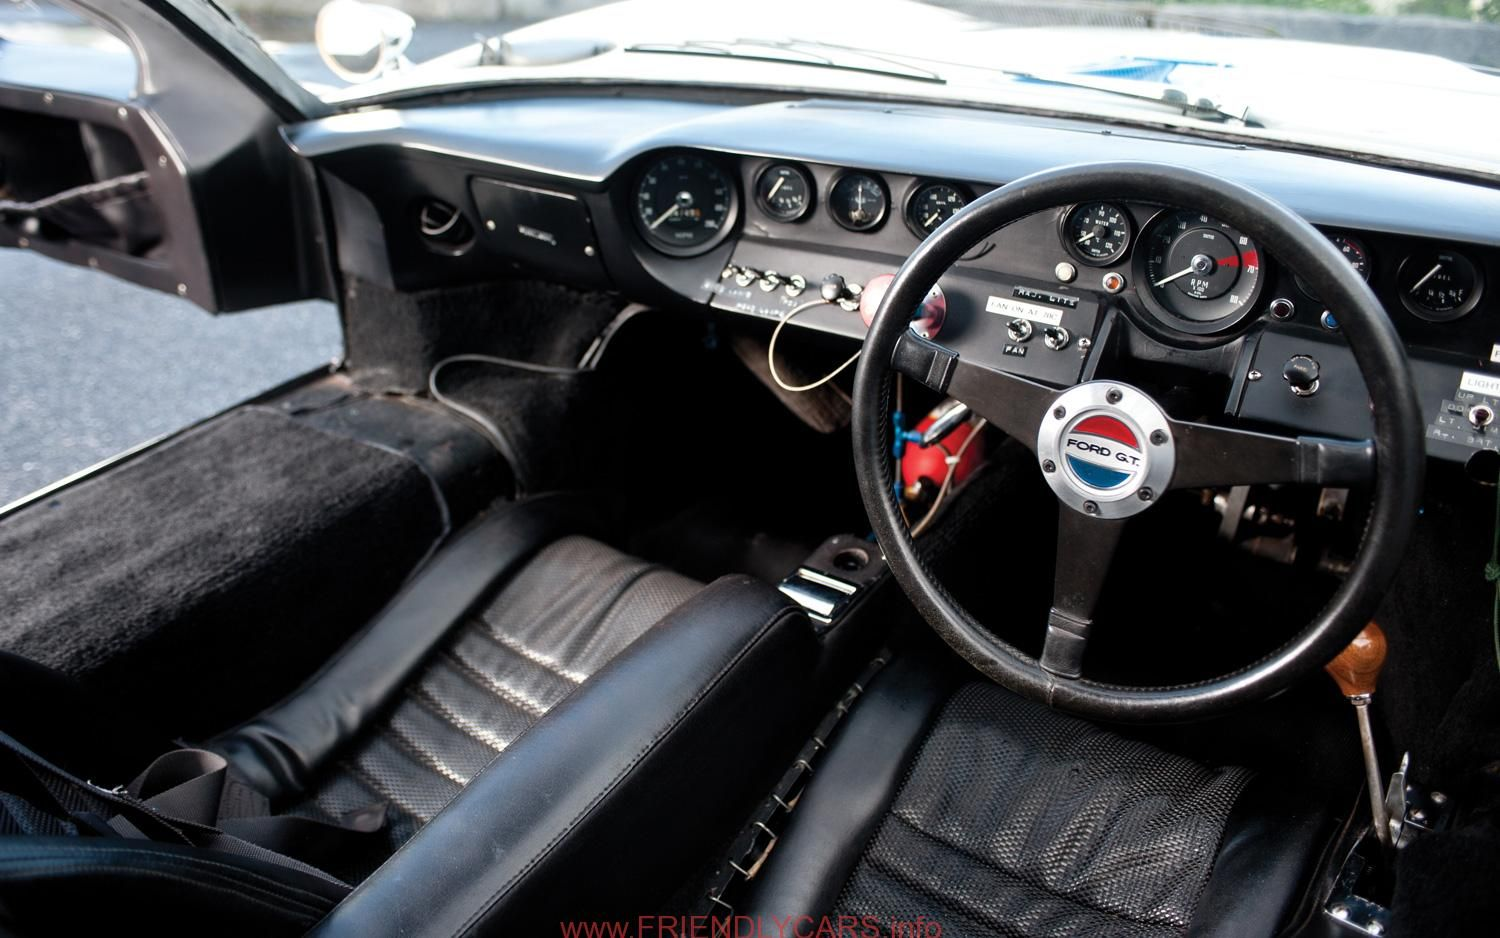 Cool Ford Gt40 Interior Car Images Hd 1968 Ford Gt40 Gulf Mirage Interior Photo 8 Ford Gt Ford Gt40 Gt40